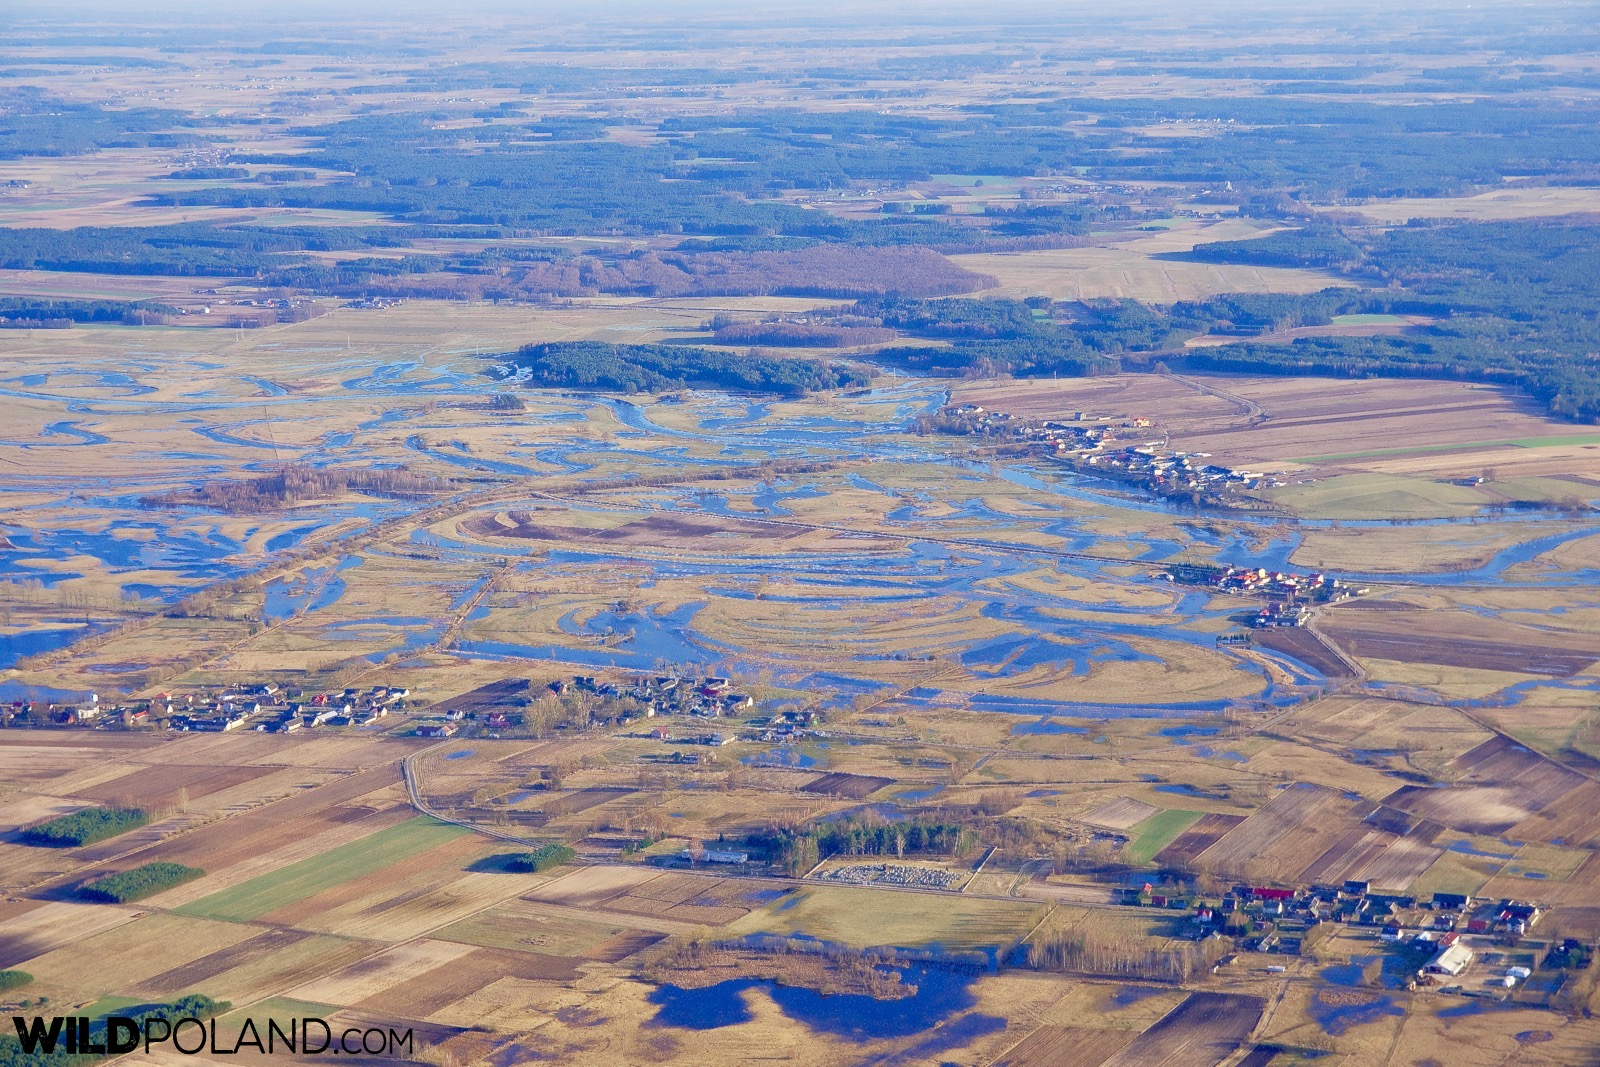 Biebrza Marshes seen from above during hot-air balloon flight, photo by Andrzej Petryna